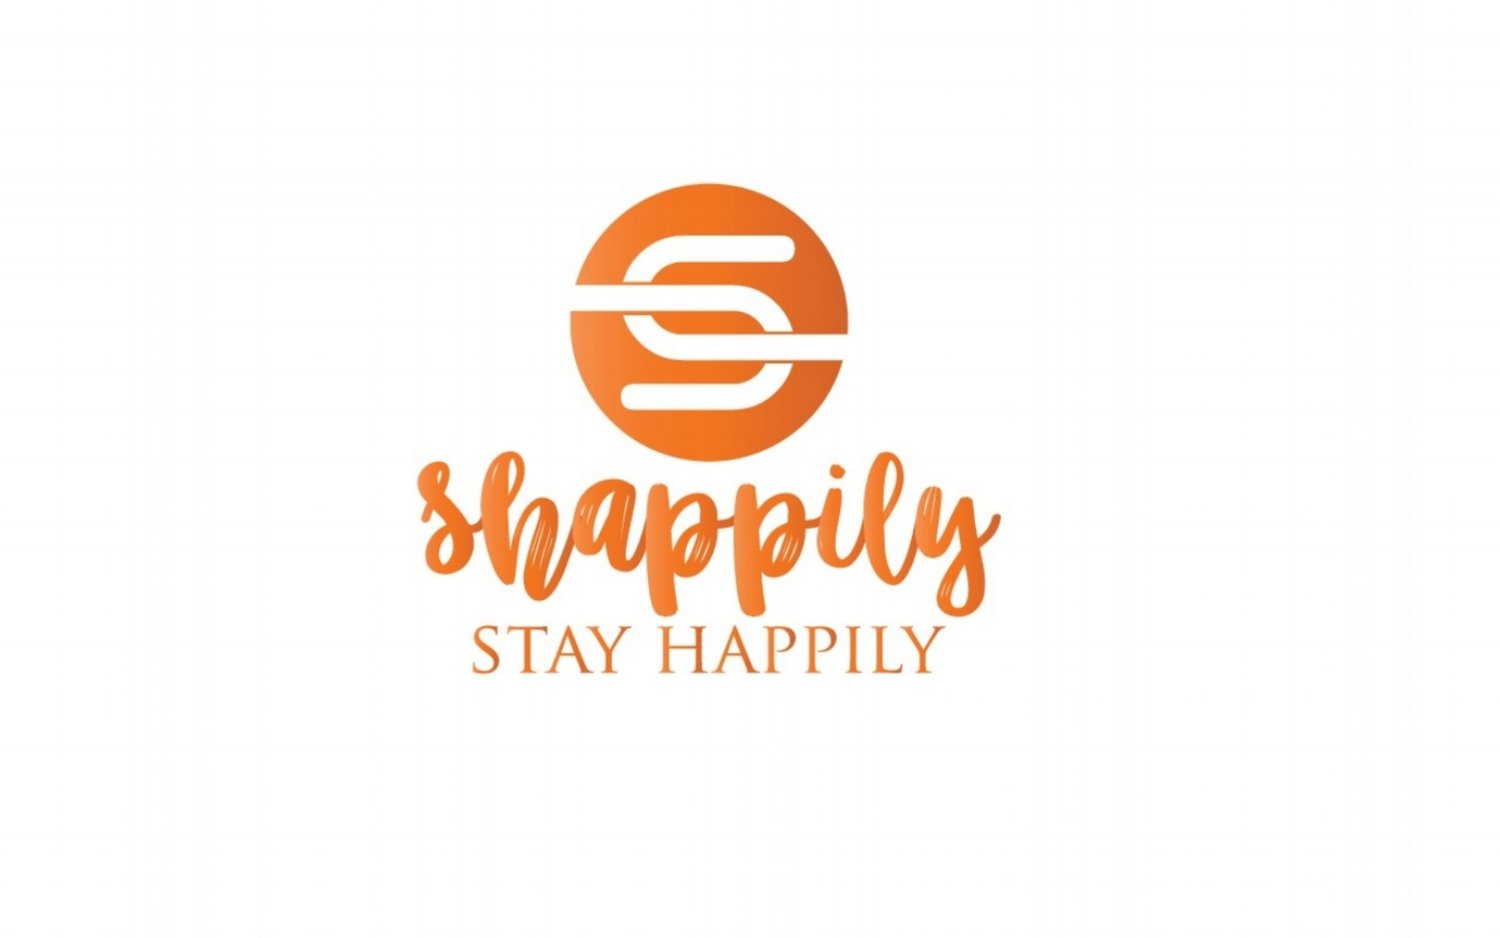 Shappily